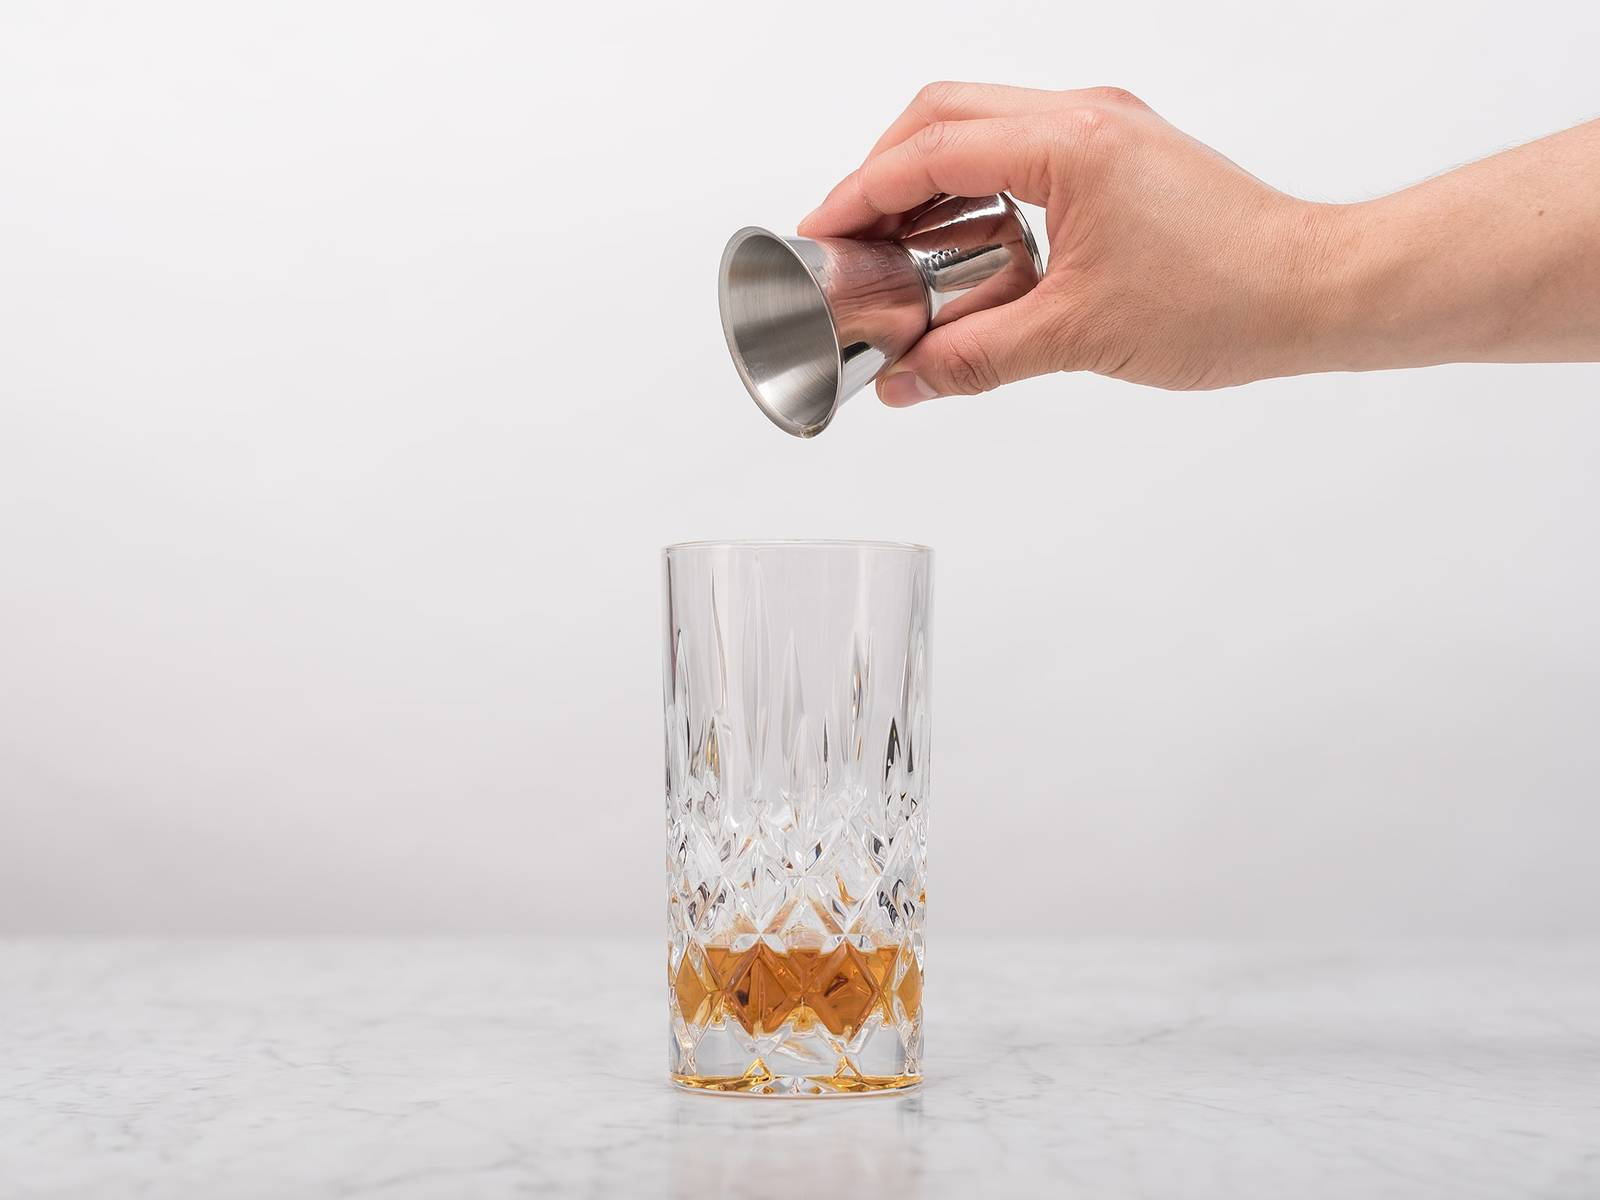 Pour whiskey into a highball glass.